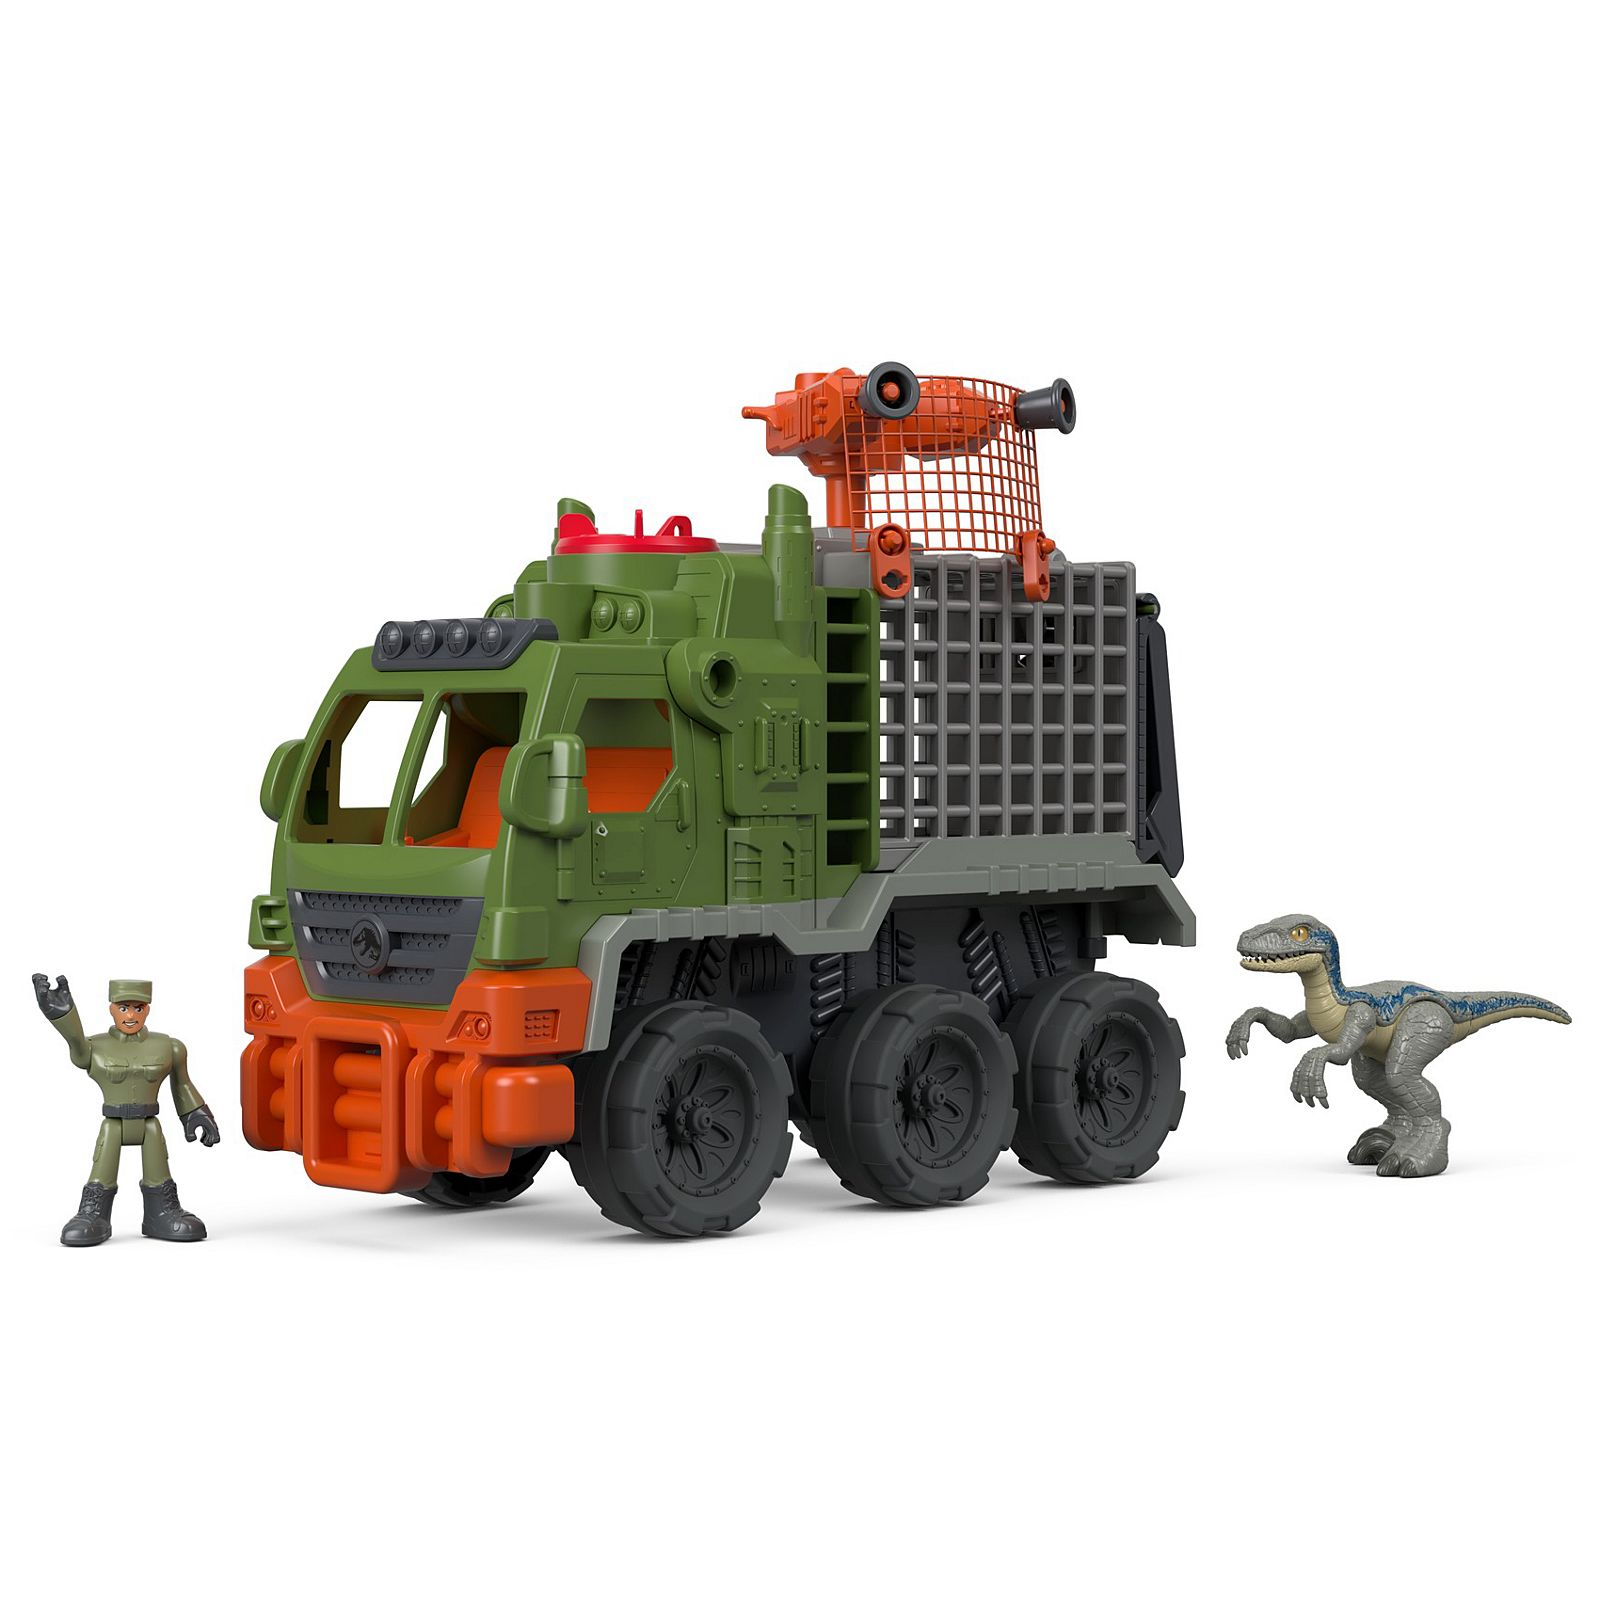 Camion Atrapa Dinosaurios Imaginext De Jurassic World 3.9 out of 5 stars 12 customer reviews. camion atrapa dinosaurios imaginext de